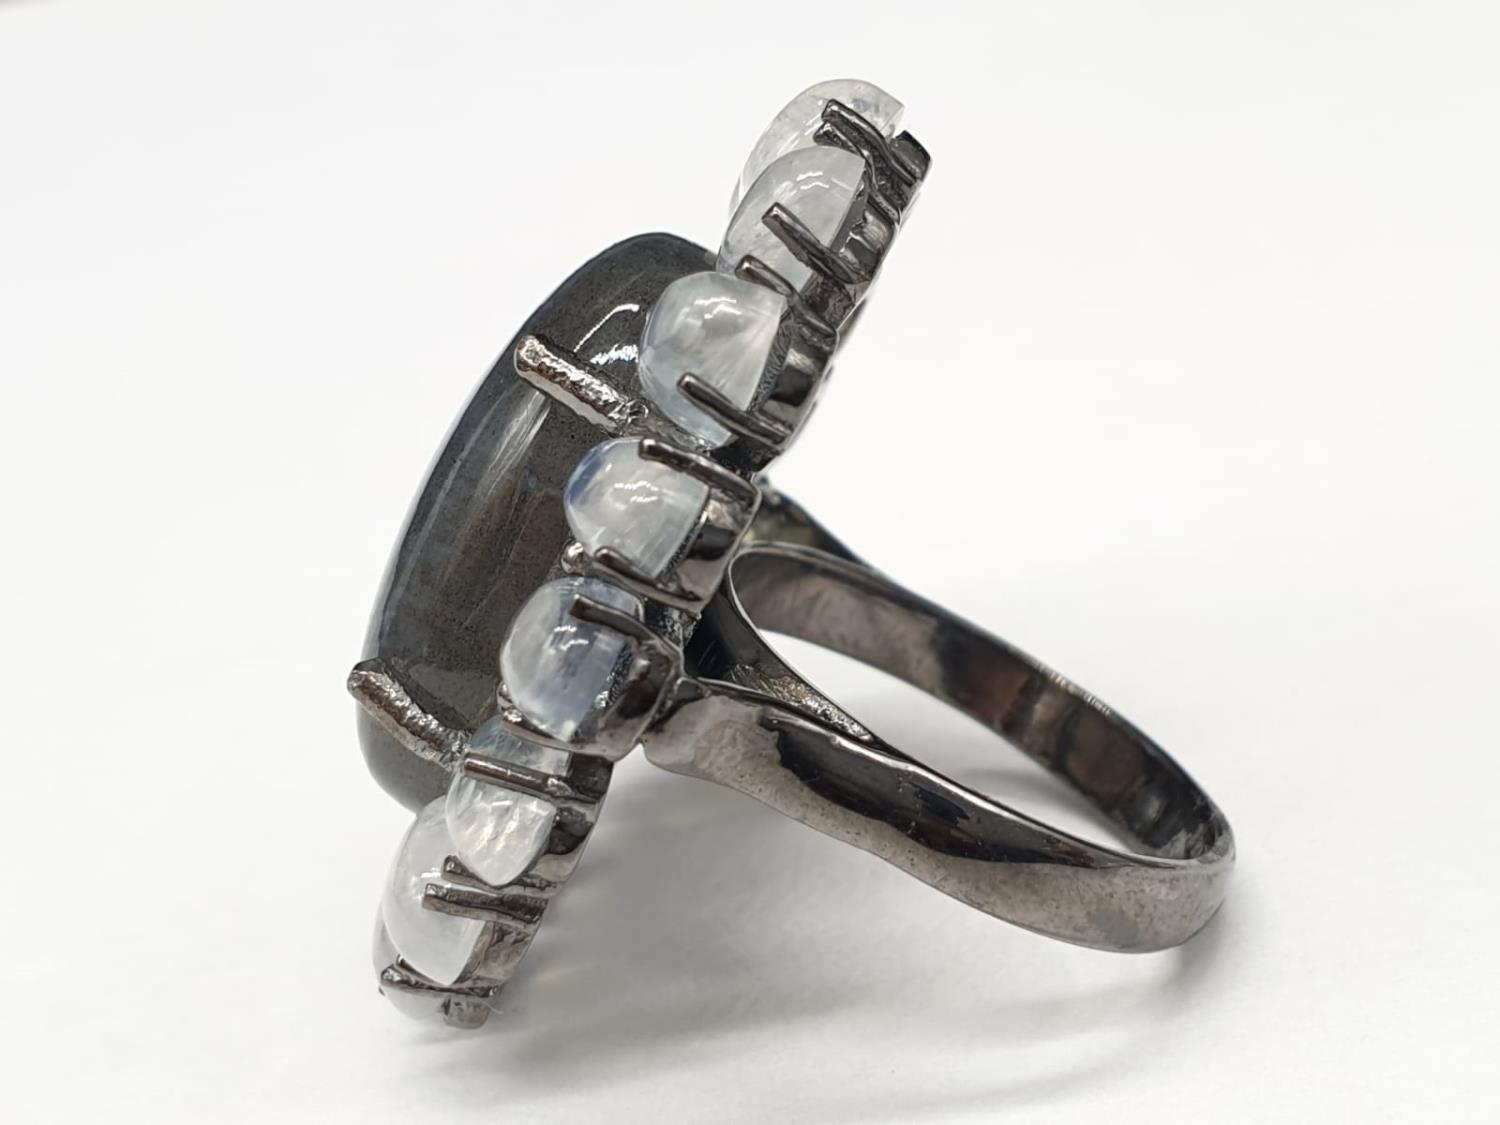 10.50 Ct Moonstones & 14.25 Ct Labradorite set within a blackened silver ring, weight 11.62g and - Image 3 of 7